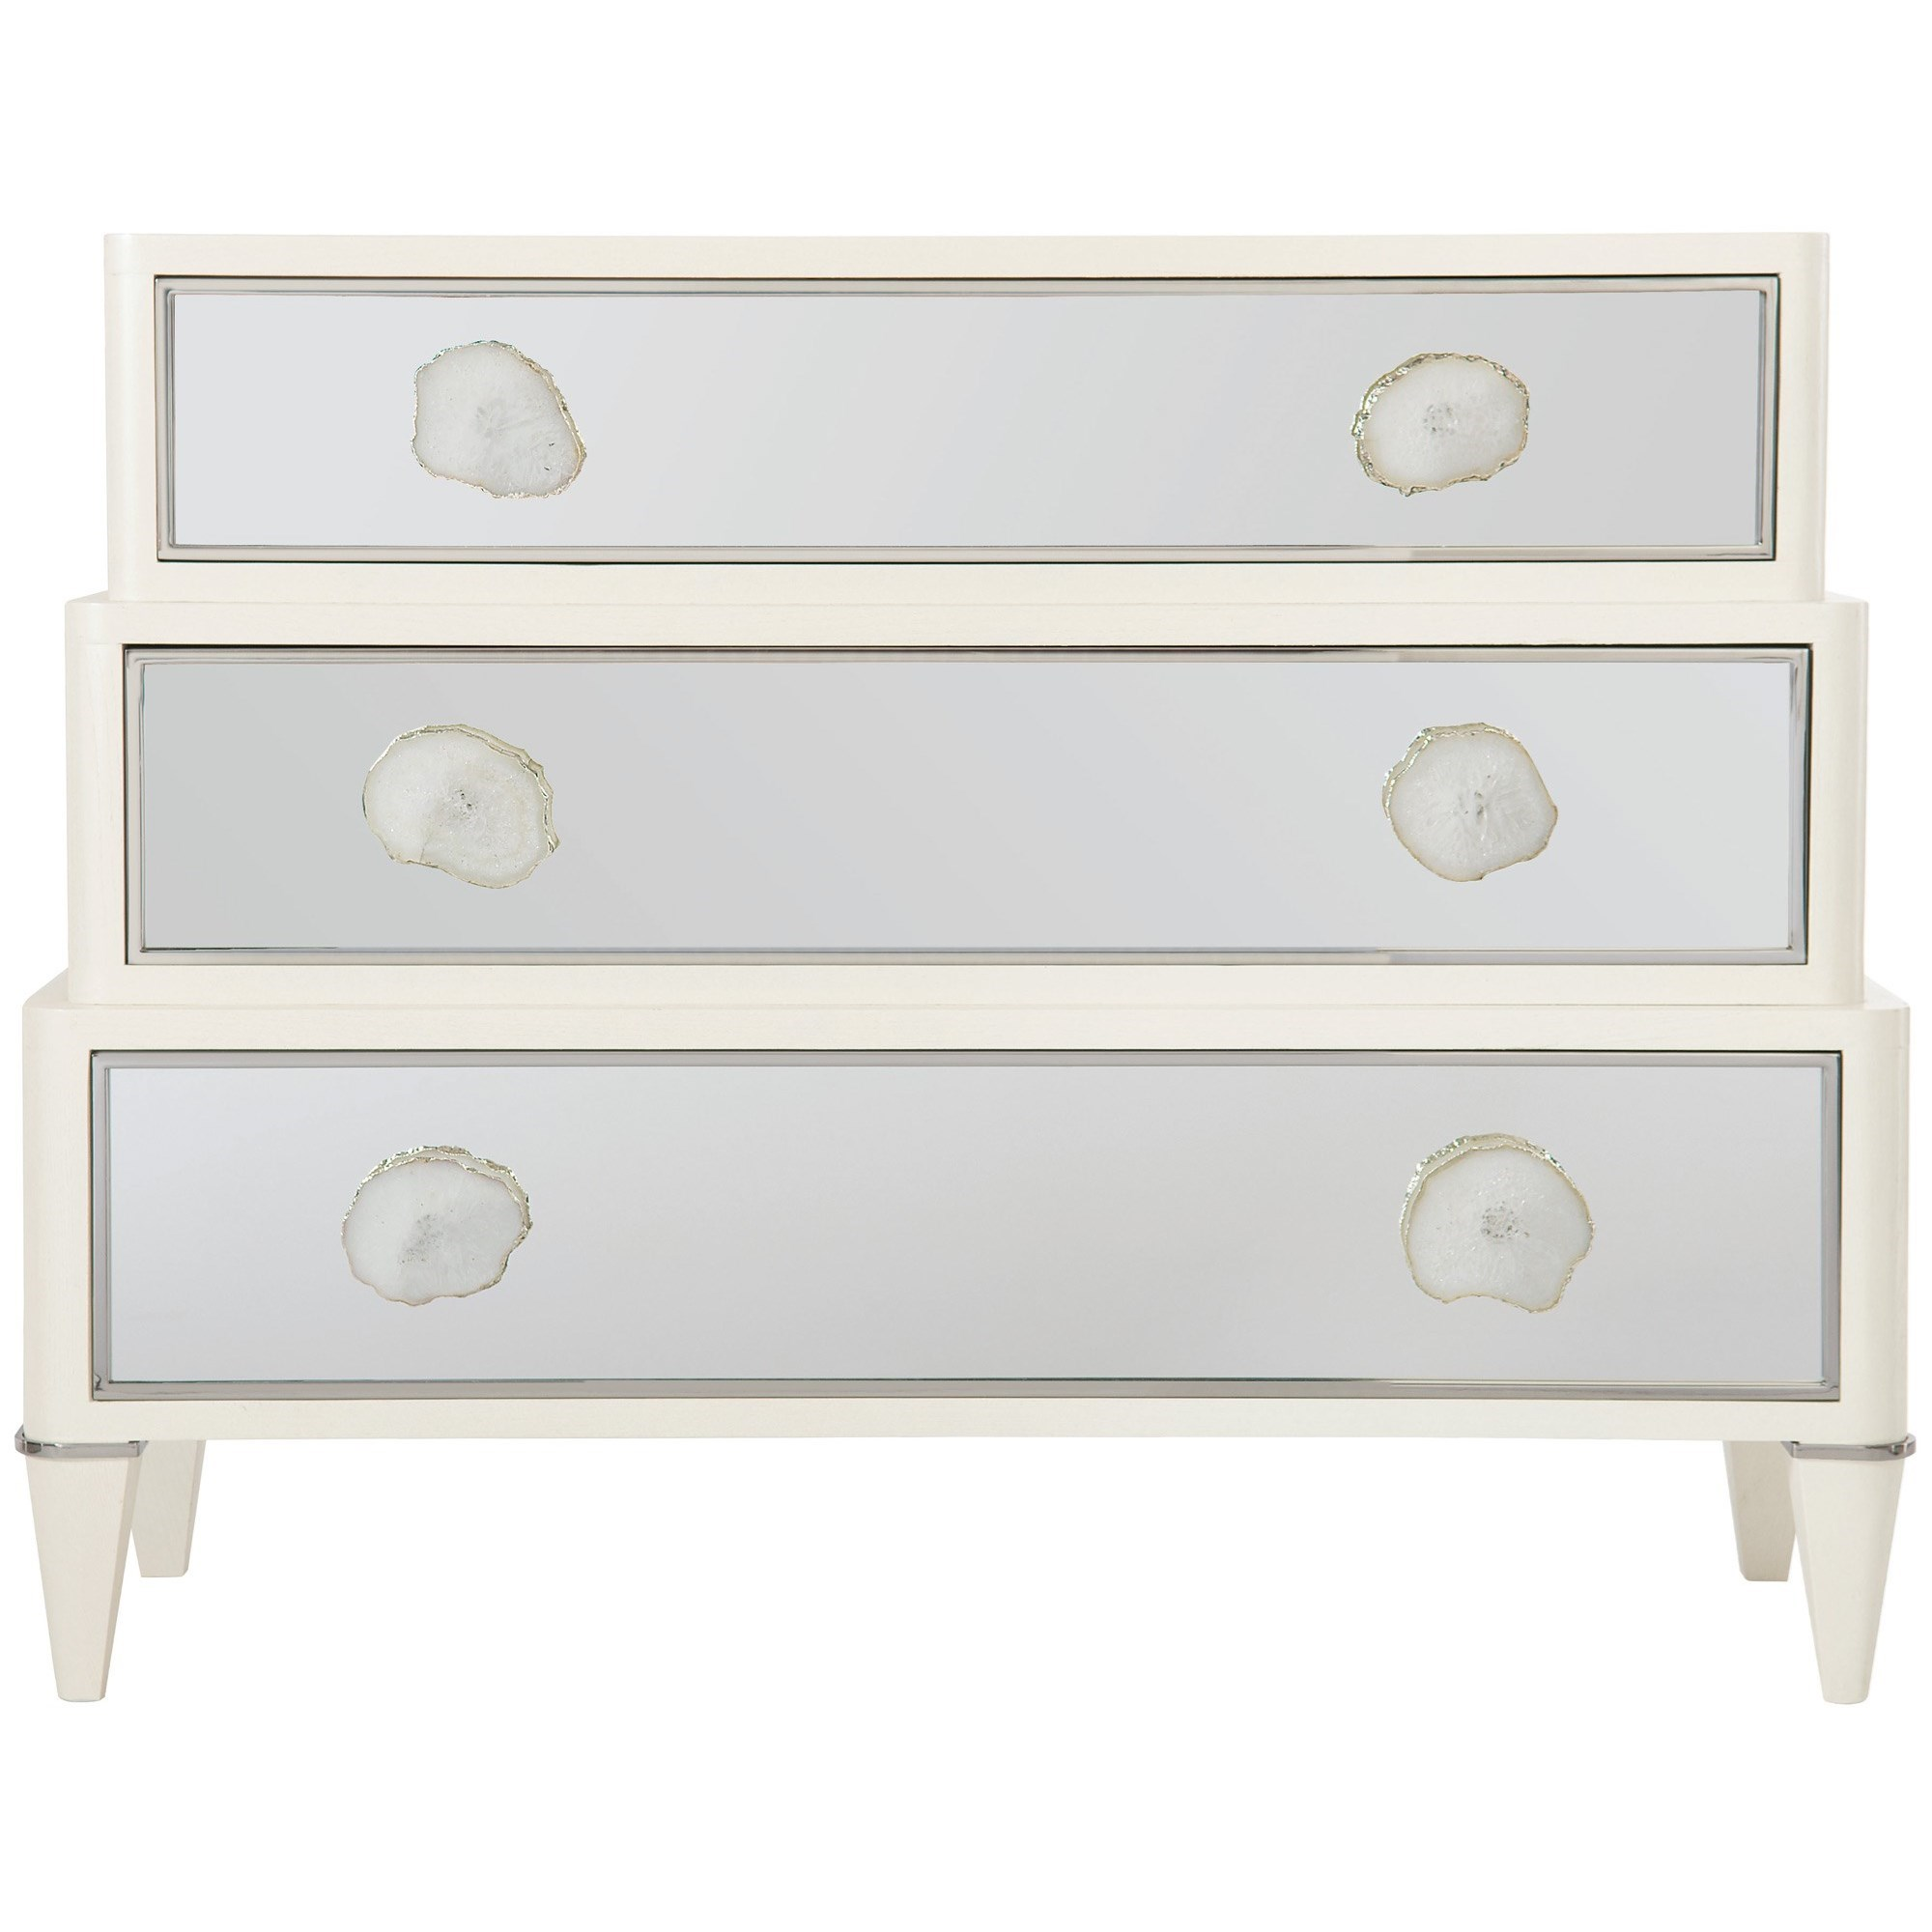 Calista Drawer Chest by Bernhardt at Baer's Furniture